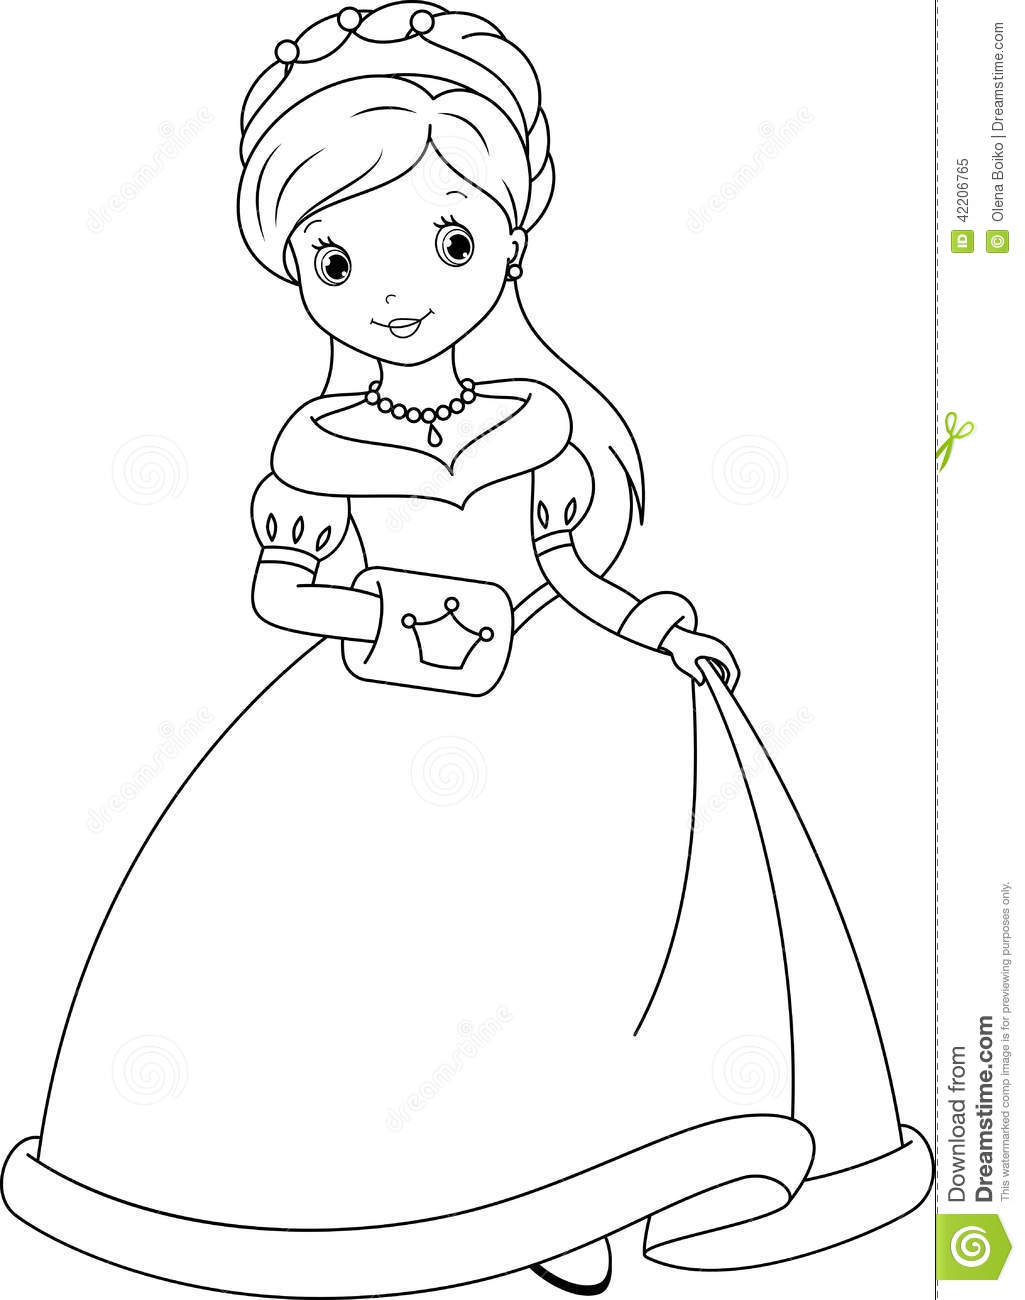 Frozen anna face coloring pages for Beautiful princess coloring pages